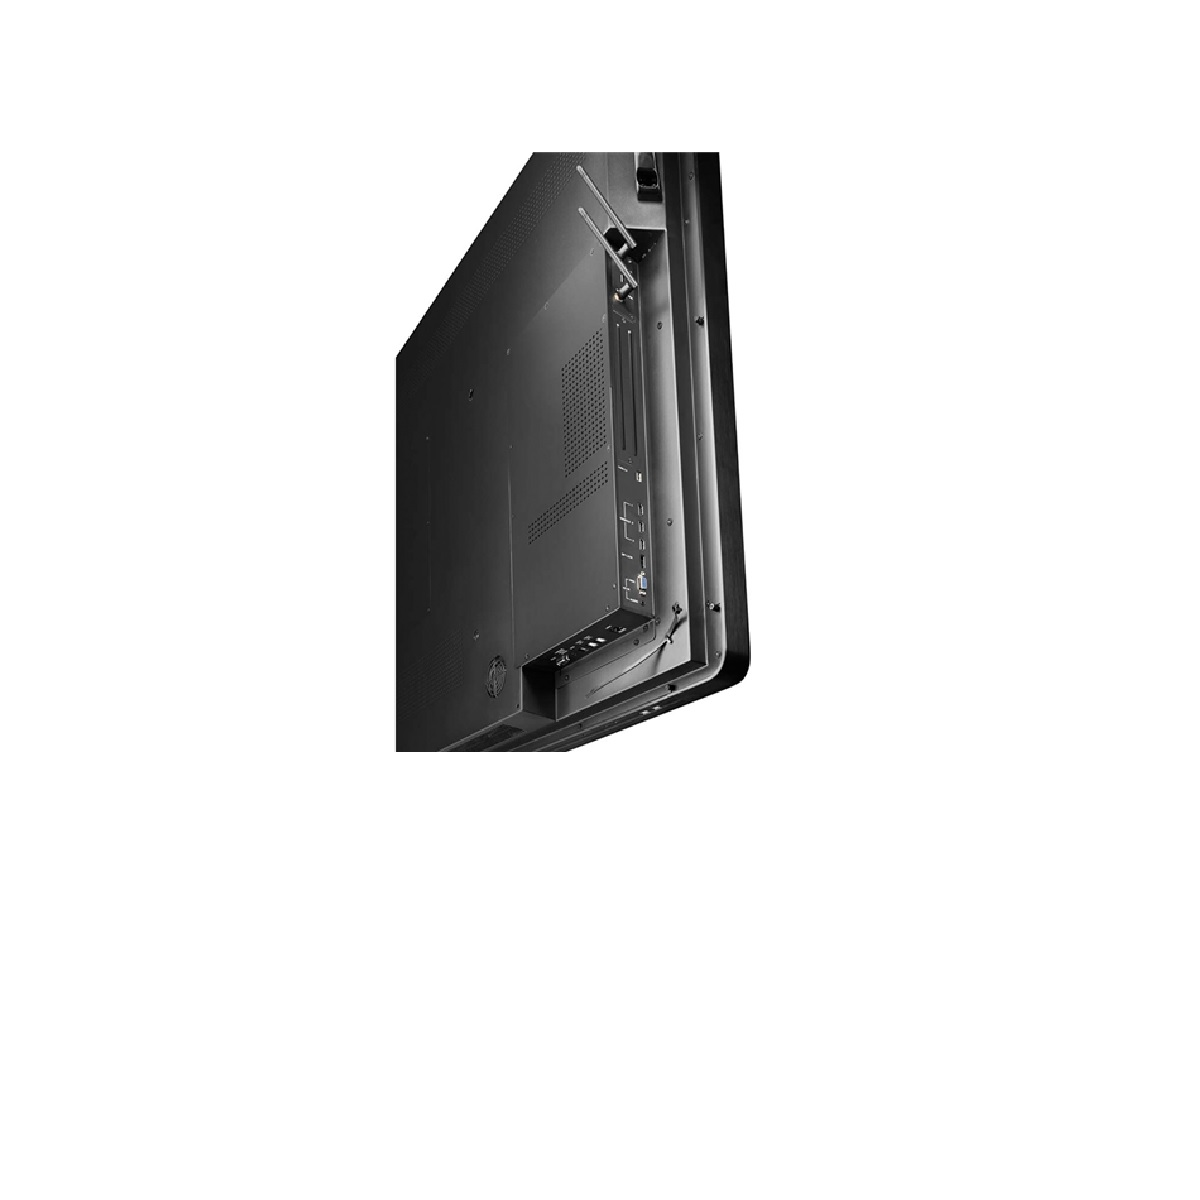 CTOUCH Slide-in Wi-Fi AC Module for Riva